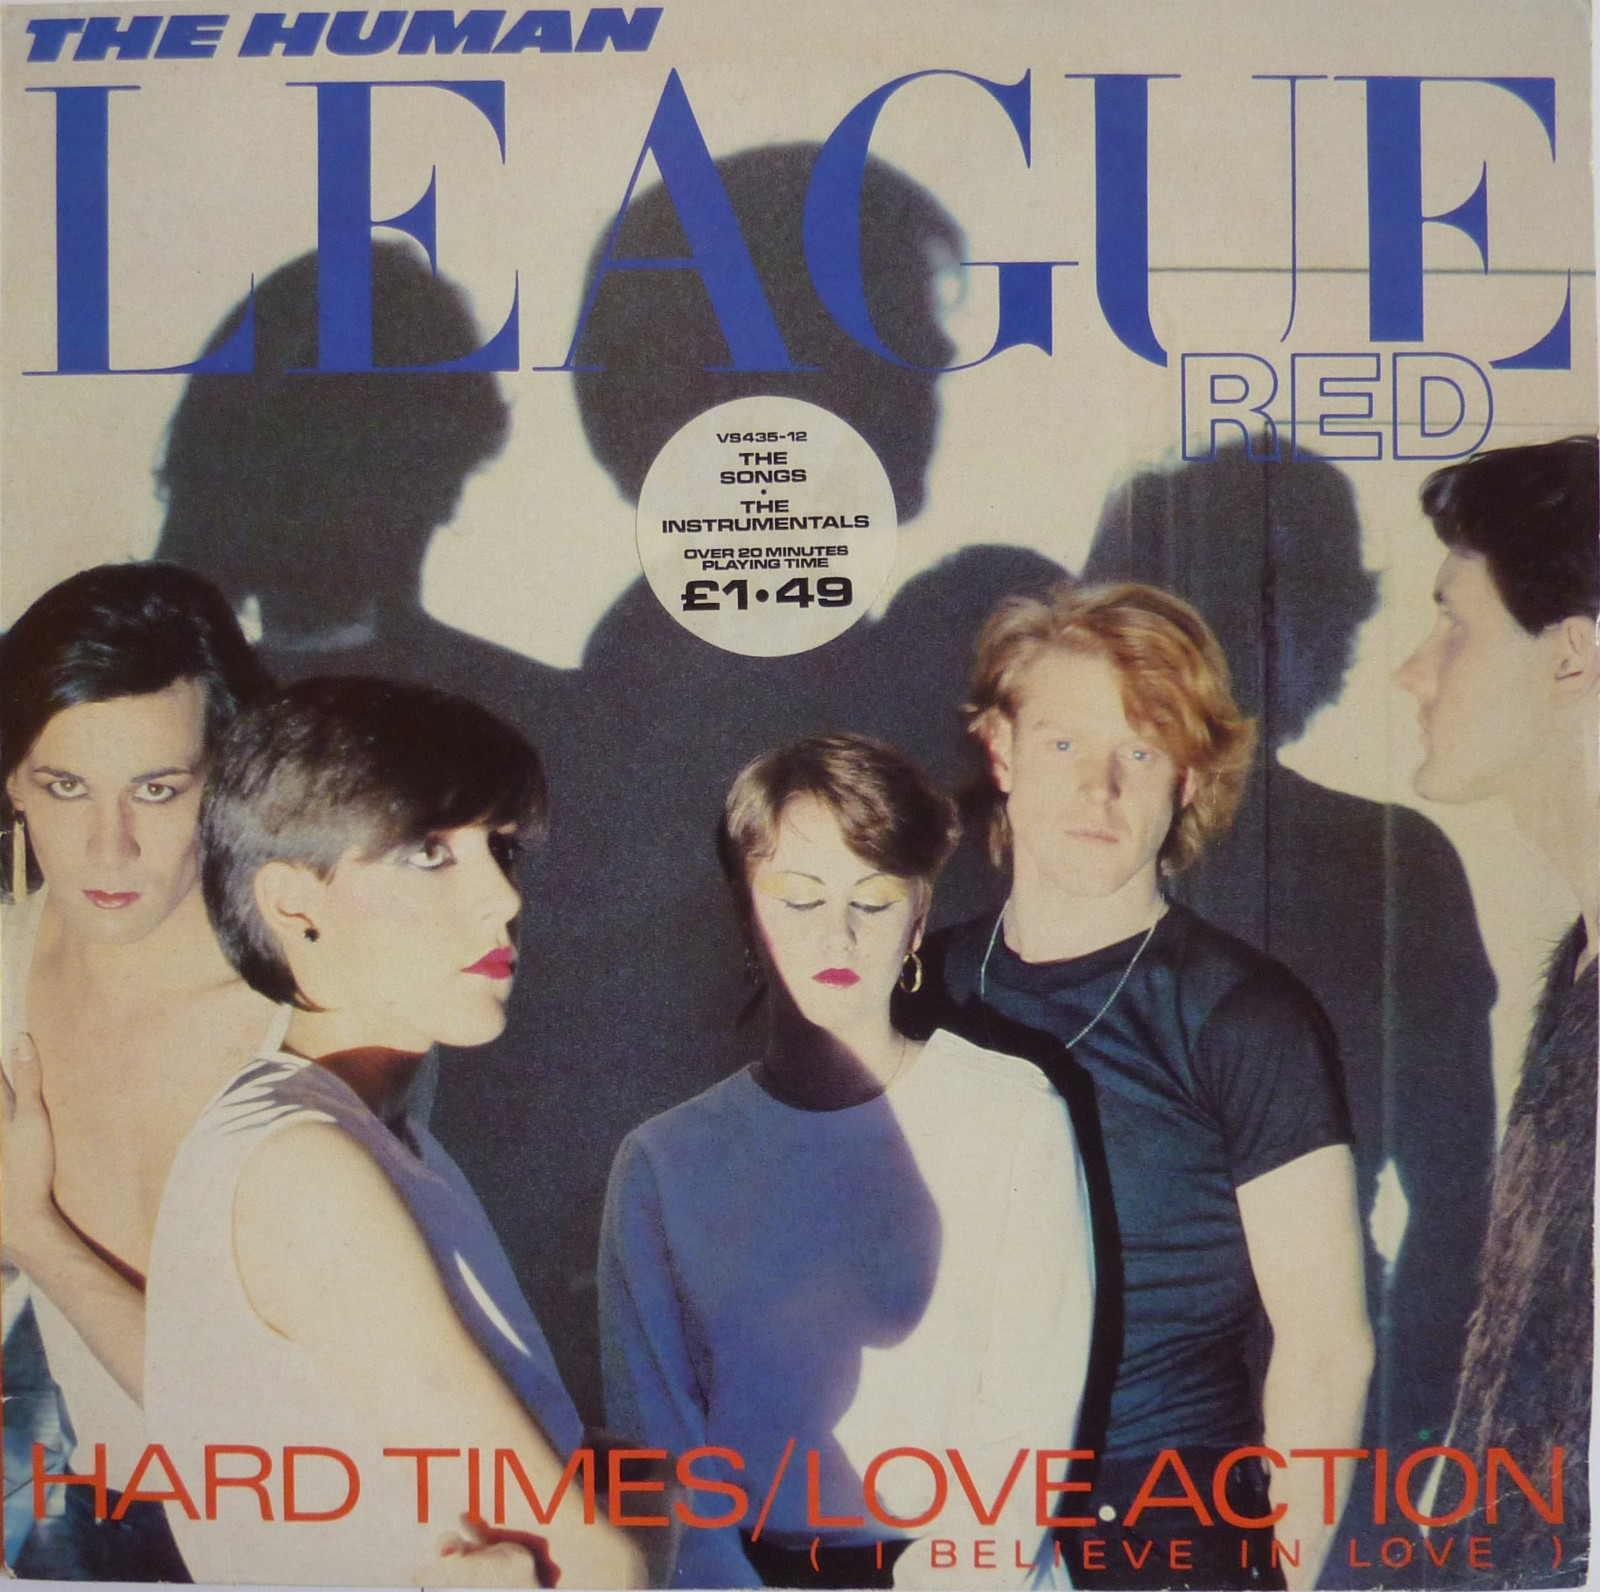 "The Human League - Hard Times/Love Action (1981) - Ski  - The Human League - Hard Times/Love Action. Utgitt på Virgin, UK 1981. Vinyl maxi singel 12"". Label VS435-12.